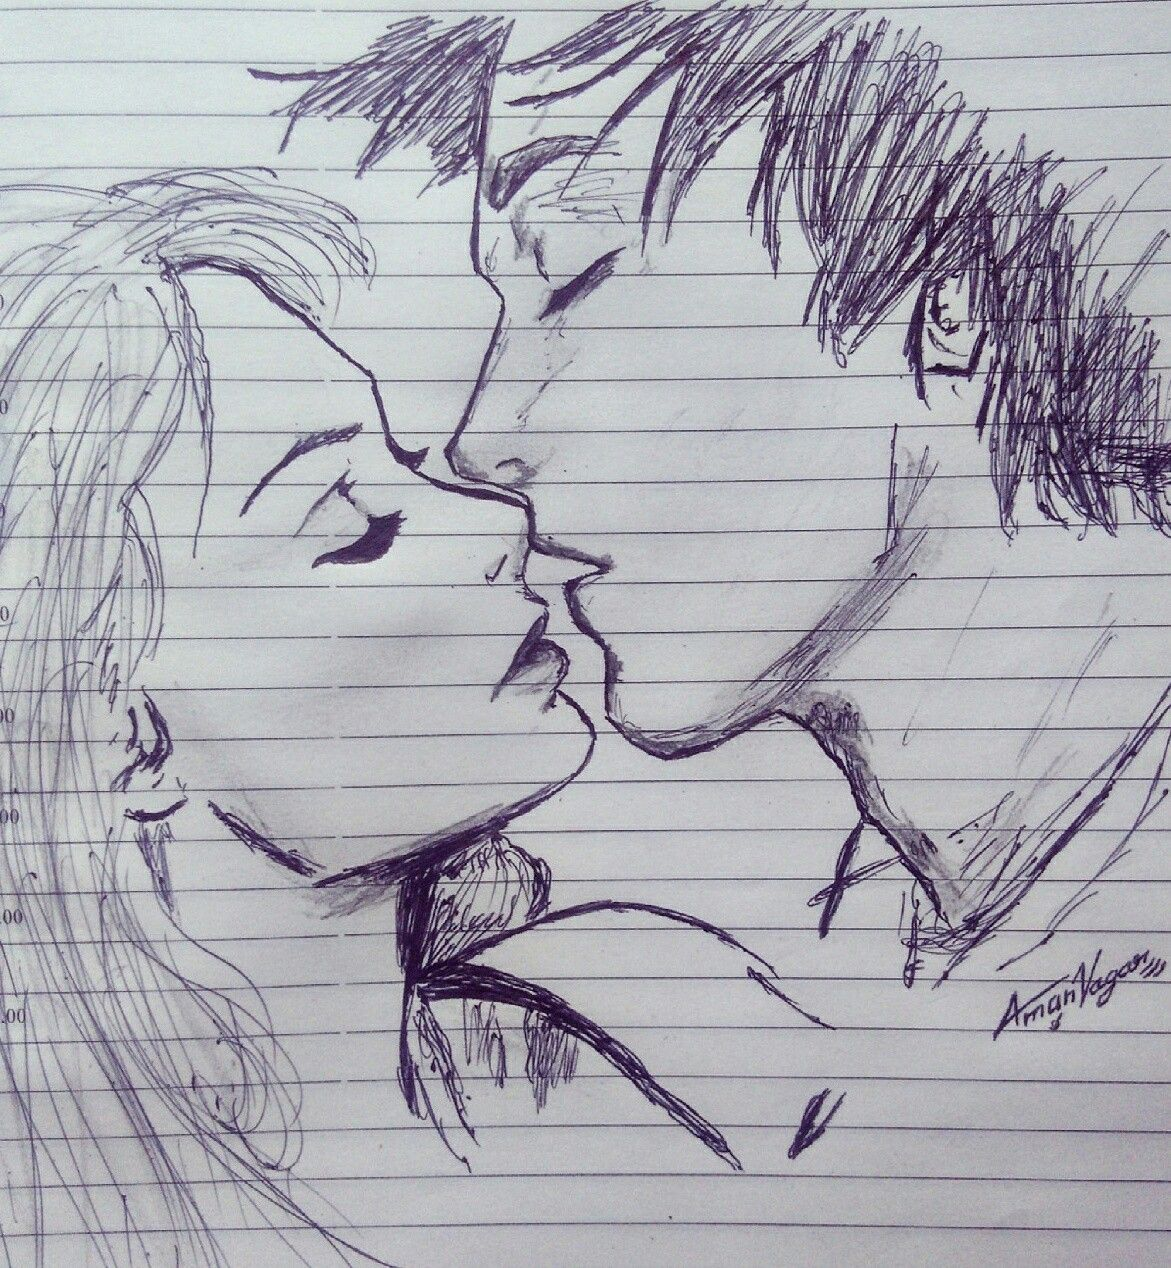 Love sketch couple sketch romantic sketch cute romantic sketch couple romantic sketch couple love sketch aman nagar sketch amannagarartist amannagarji